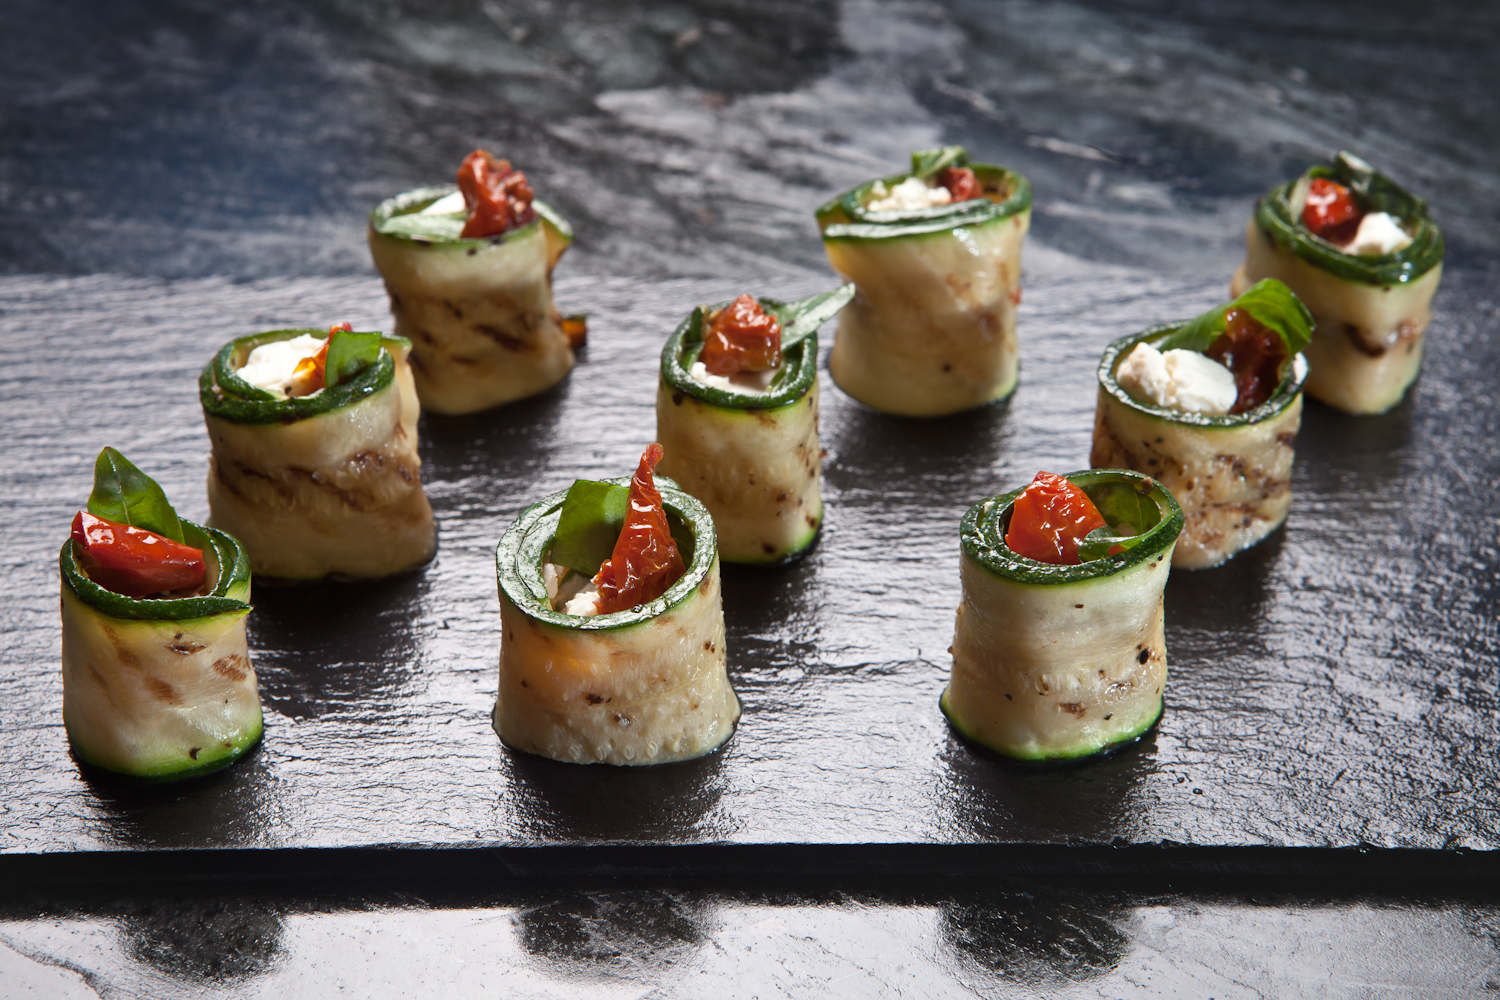 Canapes may be small but they deliver impact and taste